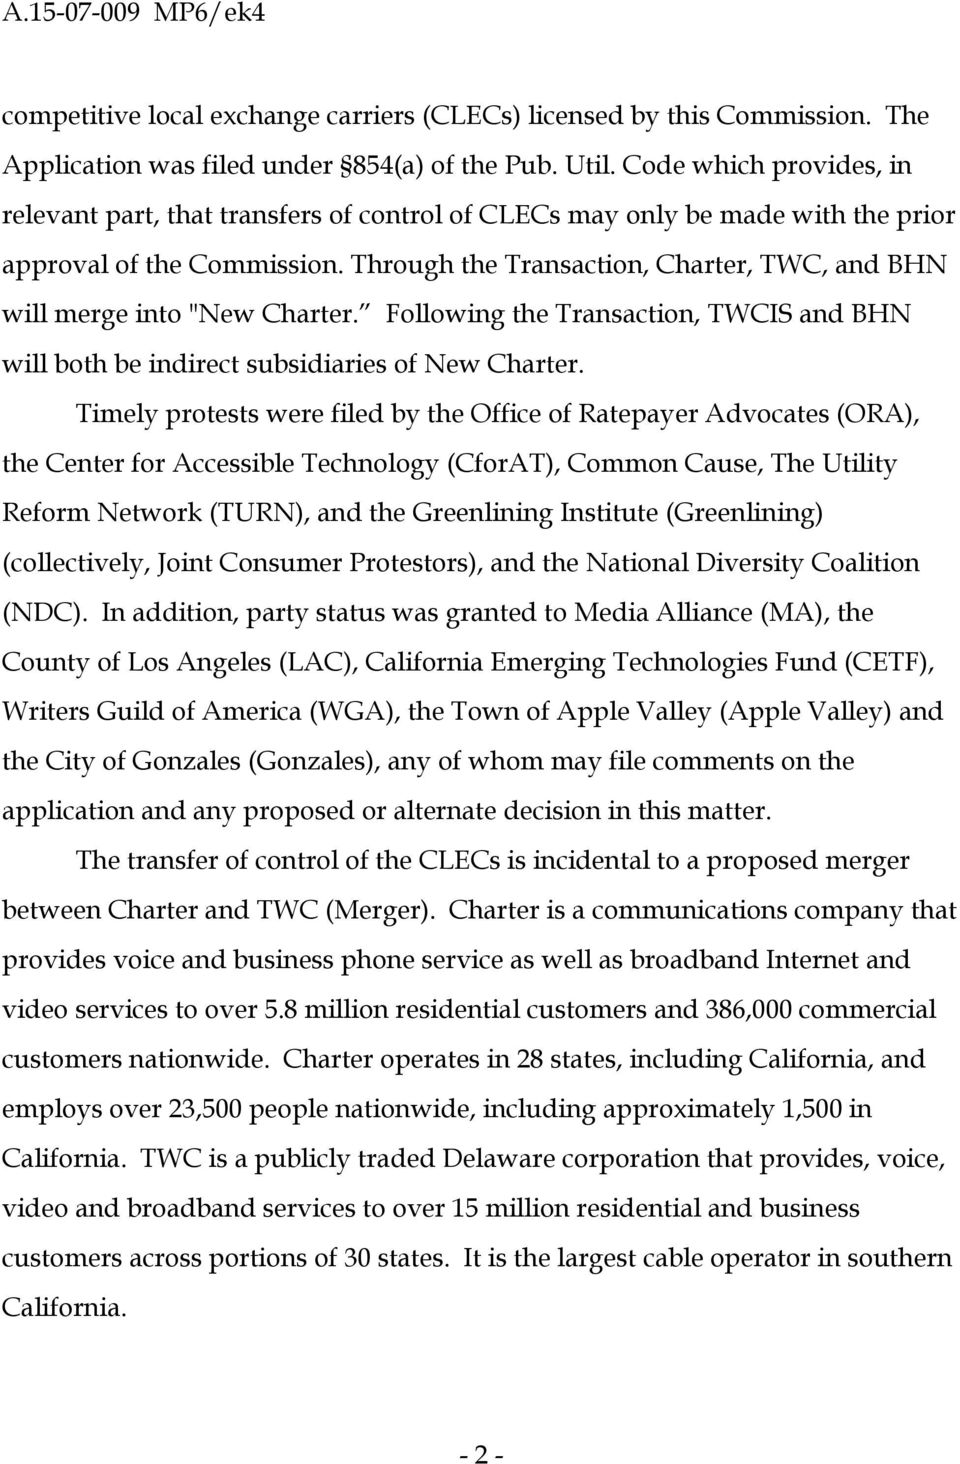 "Through the Transaction, Charter, TWC, and BHN will merge into ""New Charter. Following the Transaction, TWCIS and BHN will both be indirect subsidiaries of New Charter."